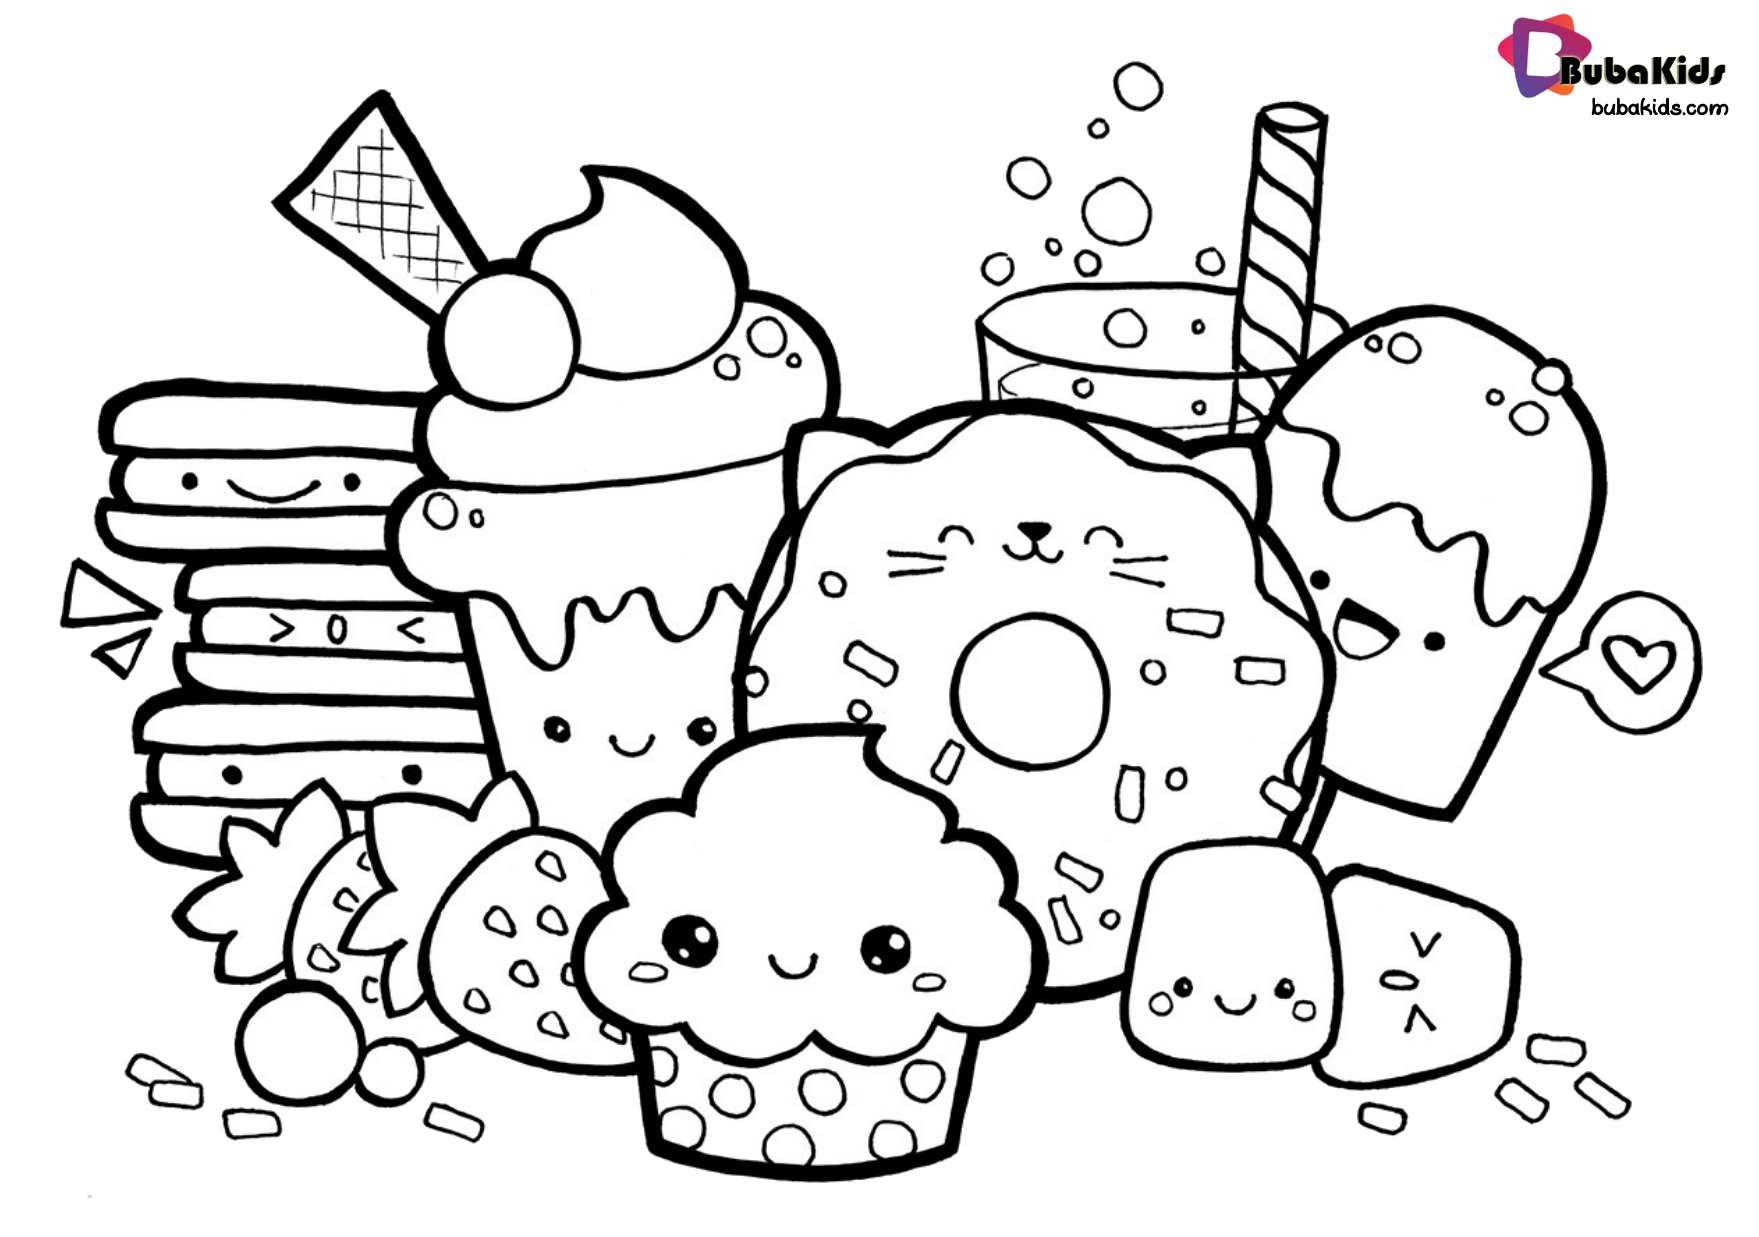 snack coloring pages easy and simple food coloring pages for kids bubakidscom coloring pages snack